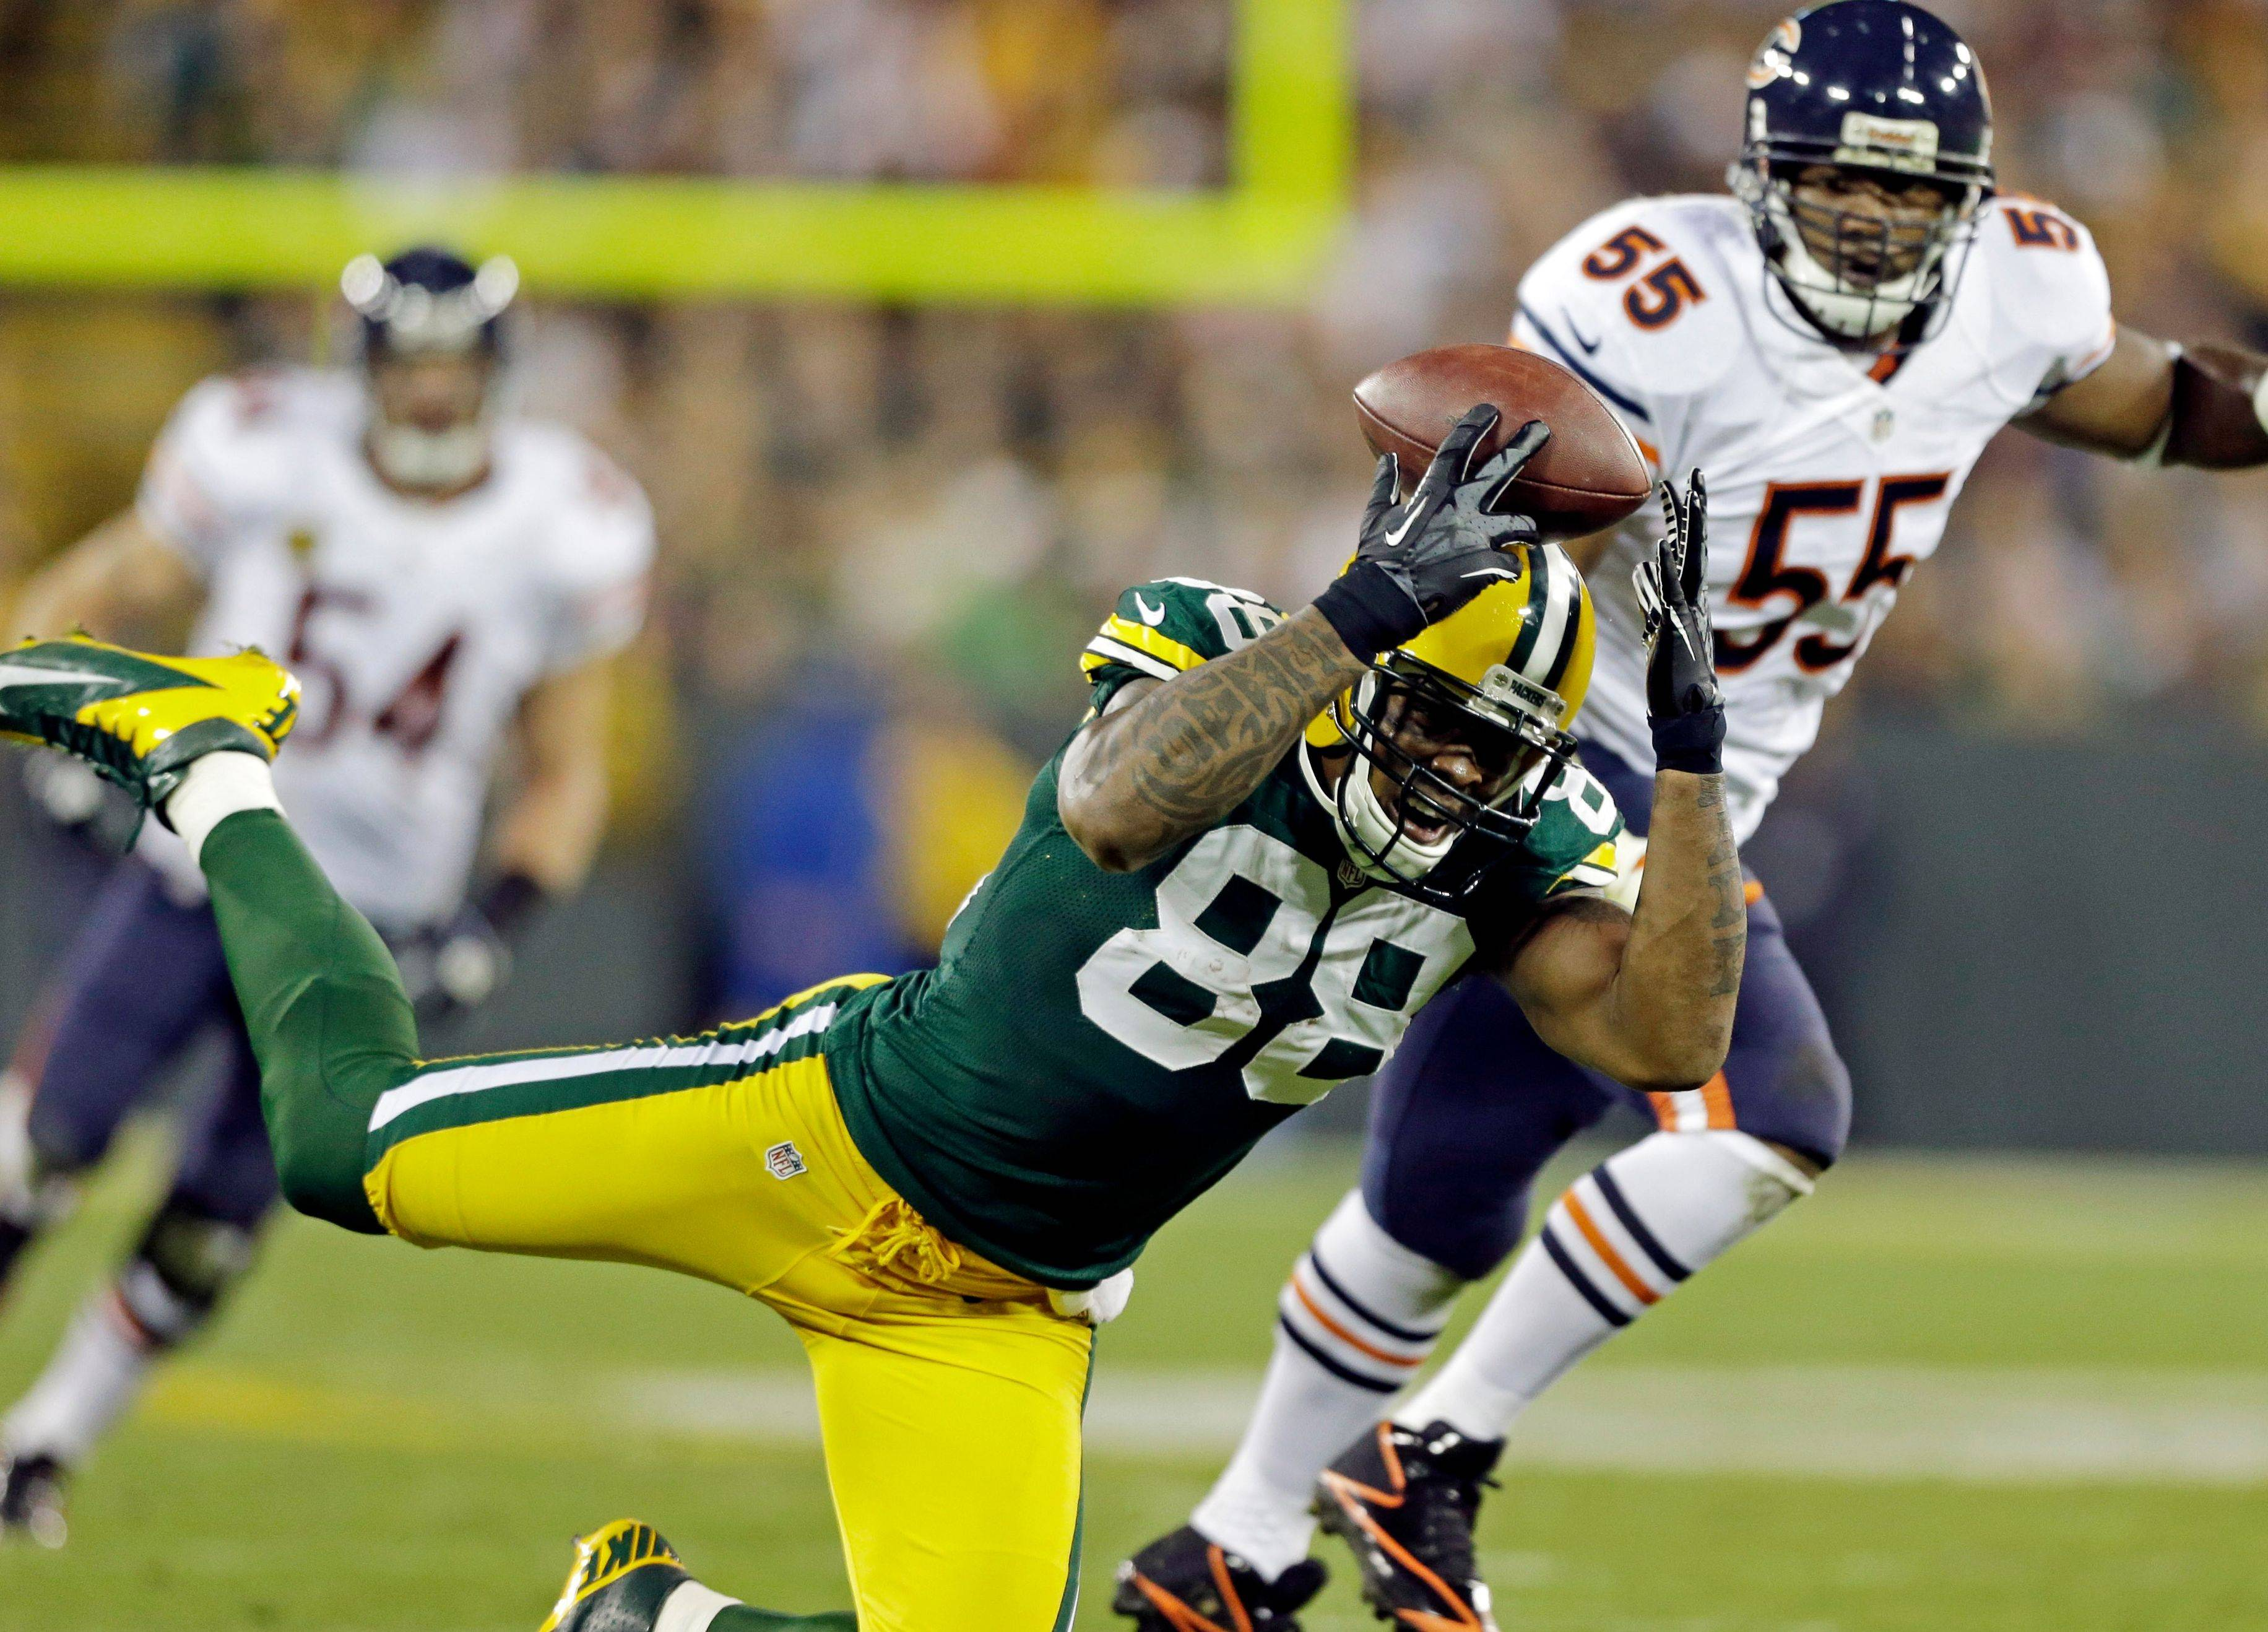 Jermichael Finley can't catch a pass in front of Lance Briggs during their game earlier this year. Finley has been killing fantasy owners this season as he has just 198 yards receiving and 1 TD.